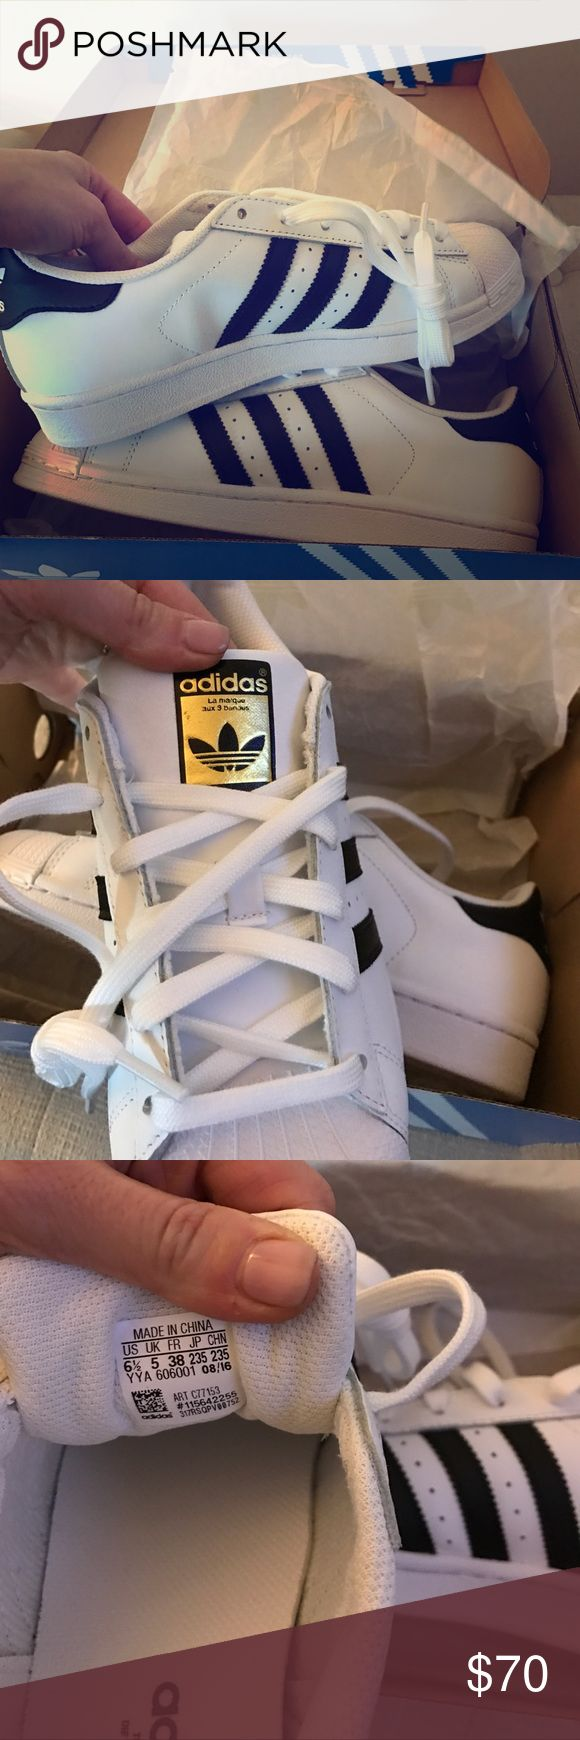 Adidas Brand new! Never worn. Still in box. Given as a gift and they are too big. Purchased for $79.99. More expensive than the original because of the gold logo on tongue of shoe. You can compare to prices online and in stores. Adidas Shoes Athletic Shoes